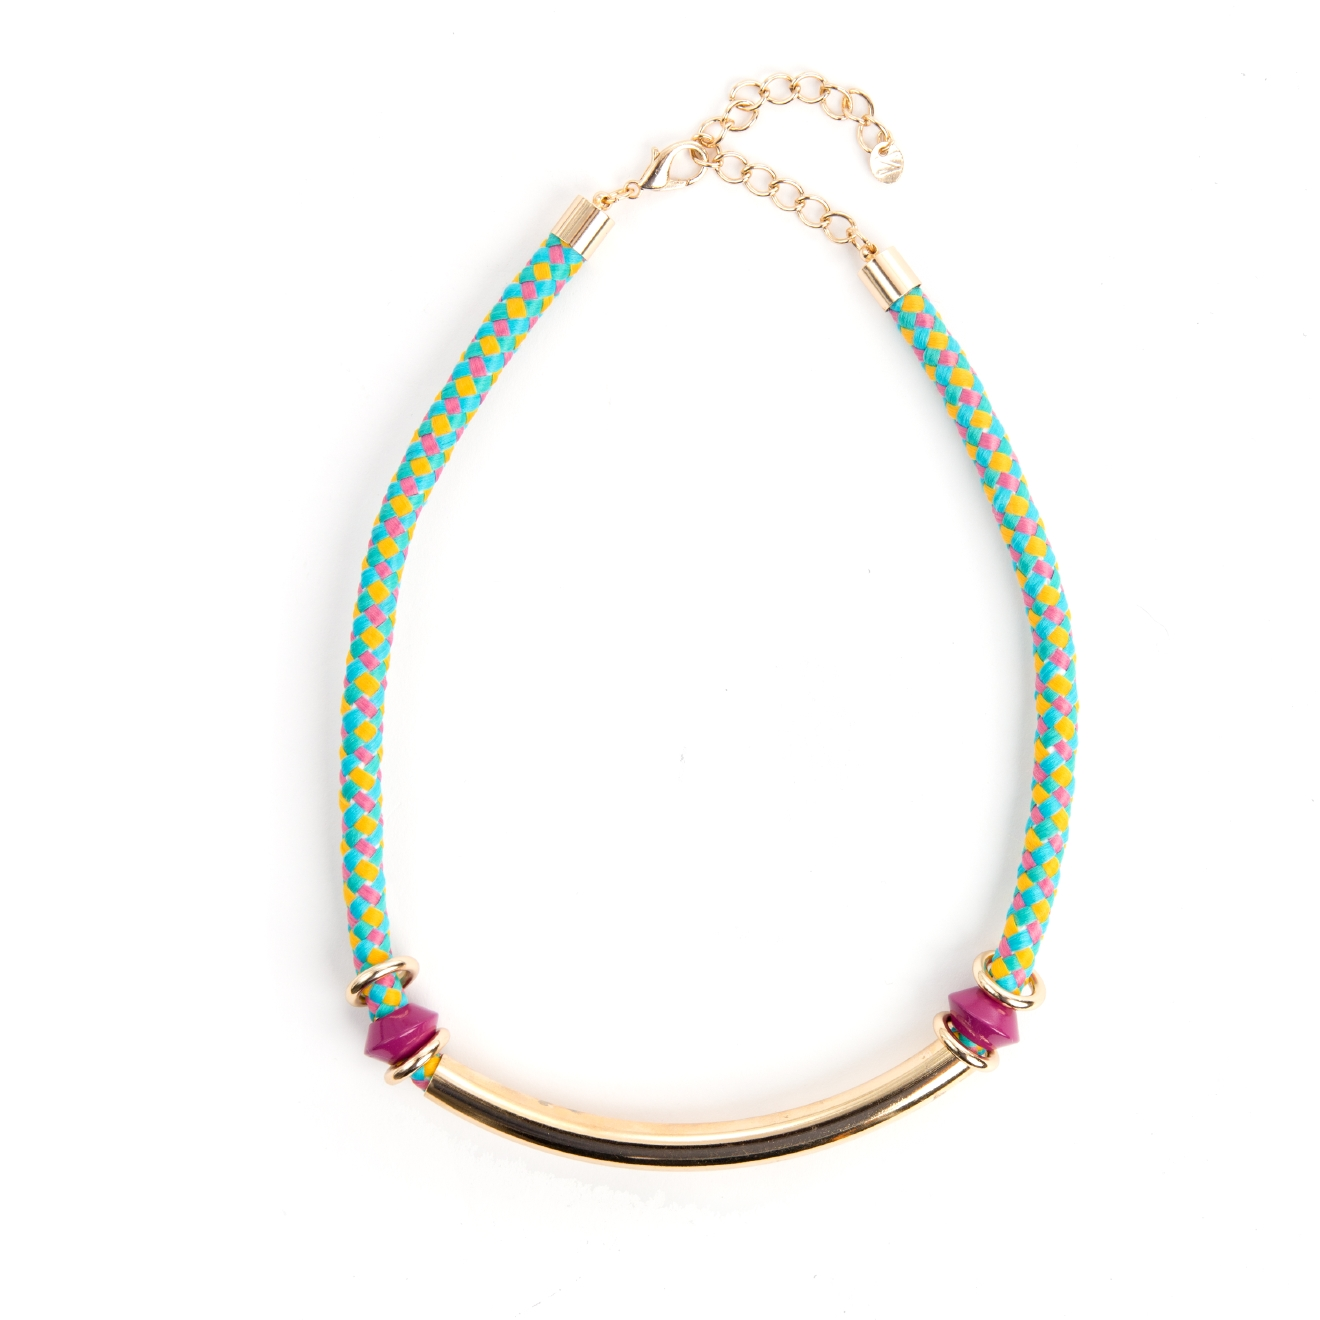 Pomander Place Braided Stella Necklace, $35 (Tuckernuck)